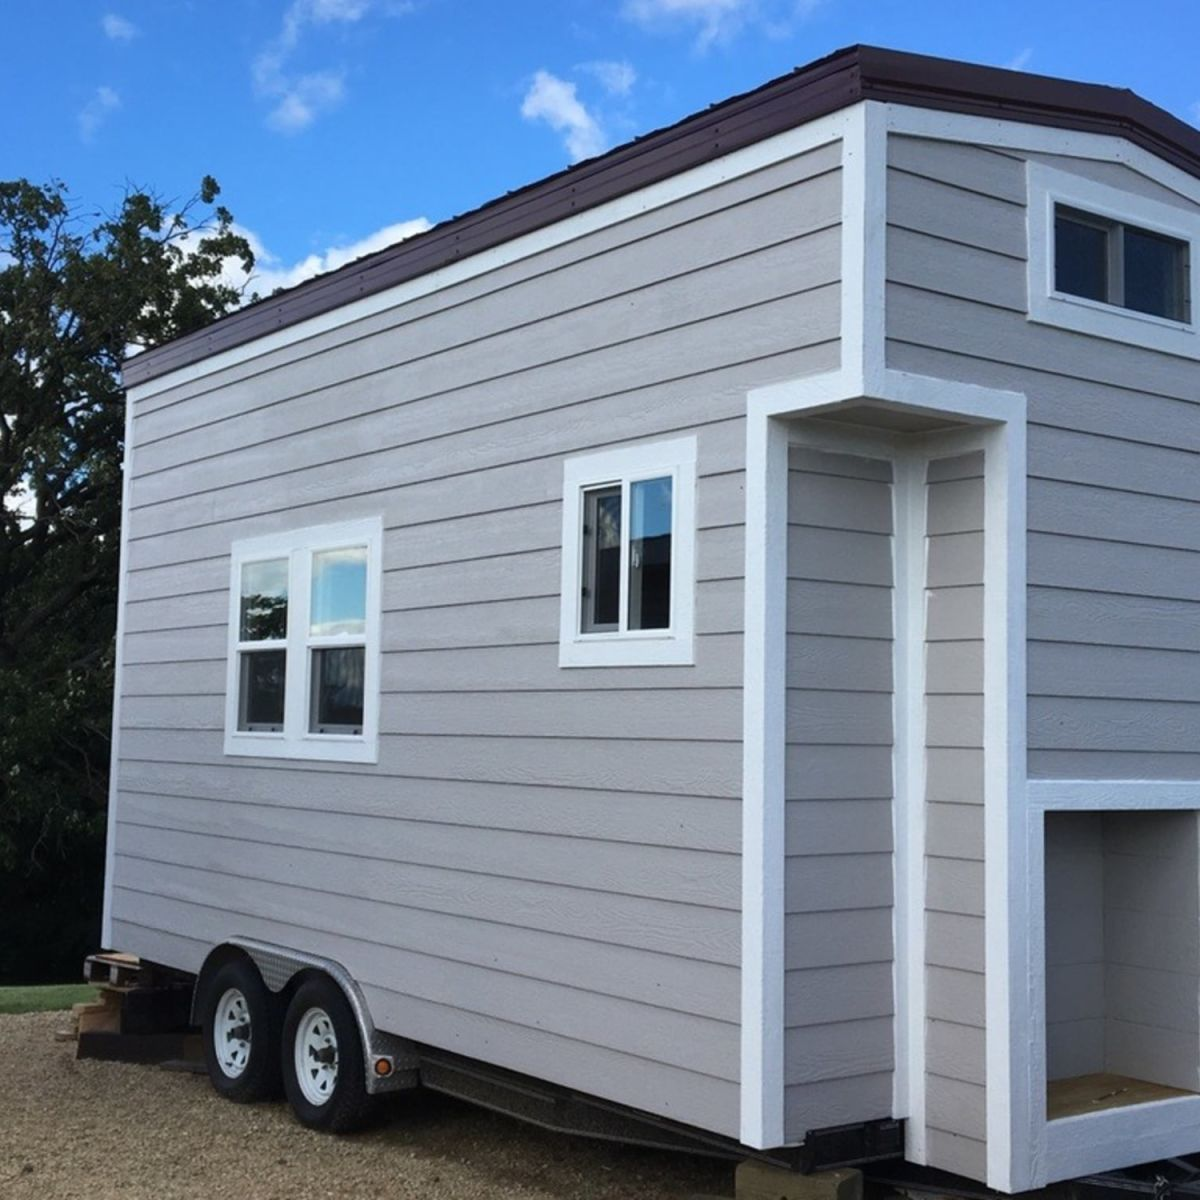 Rent House Search: Tiny House For Rent In Madison